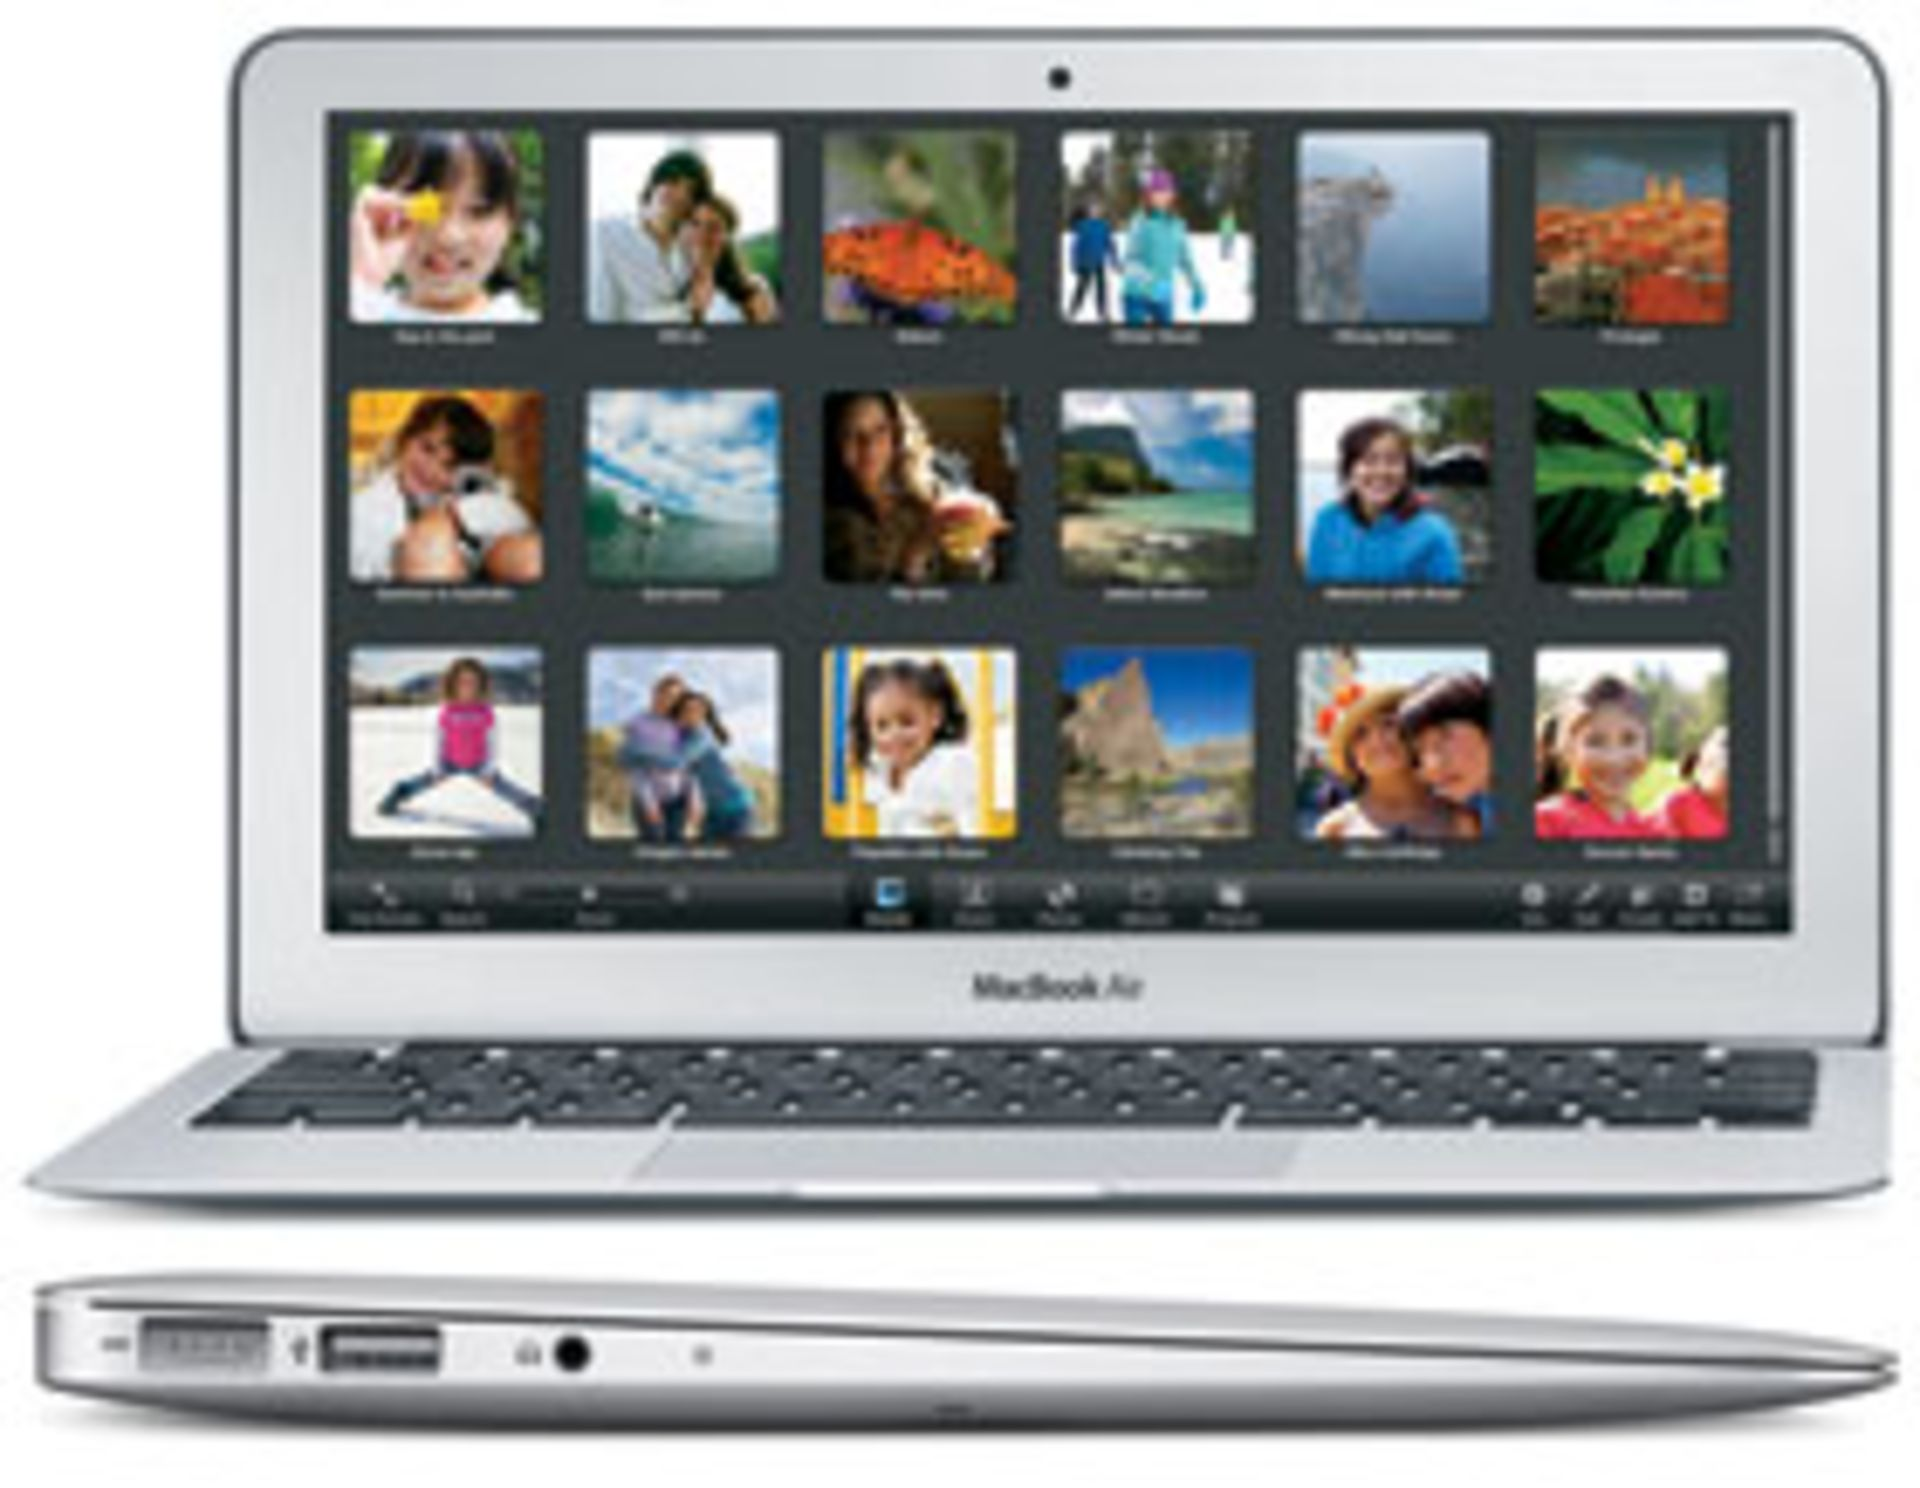 Lot 60020 - V Grade B Macbook Air 11.6 Inch Core 2 Duo - 64GB SSD - A1370 - Available Approx 7 Working Days